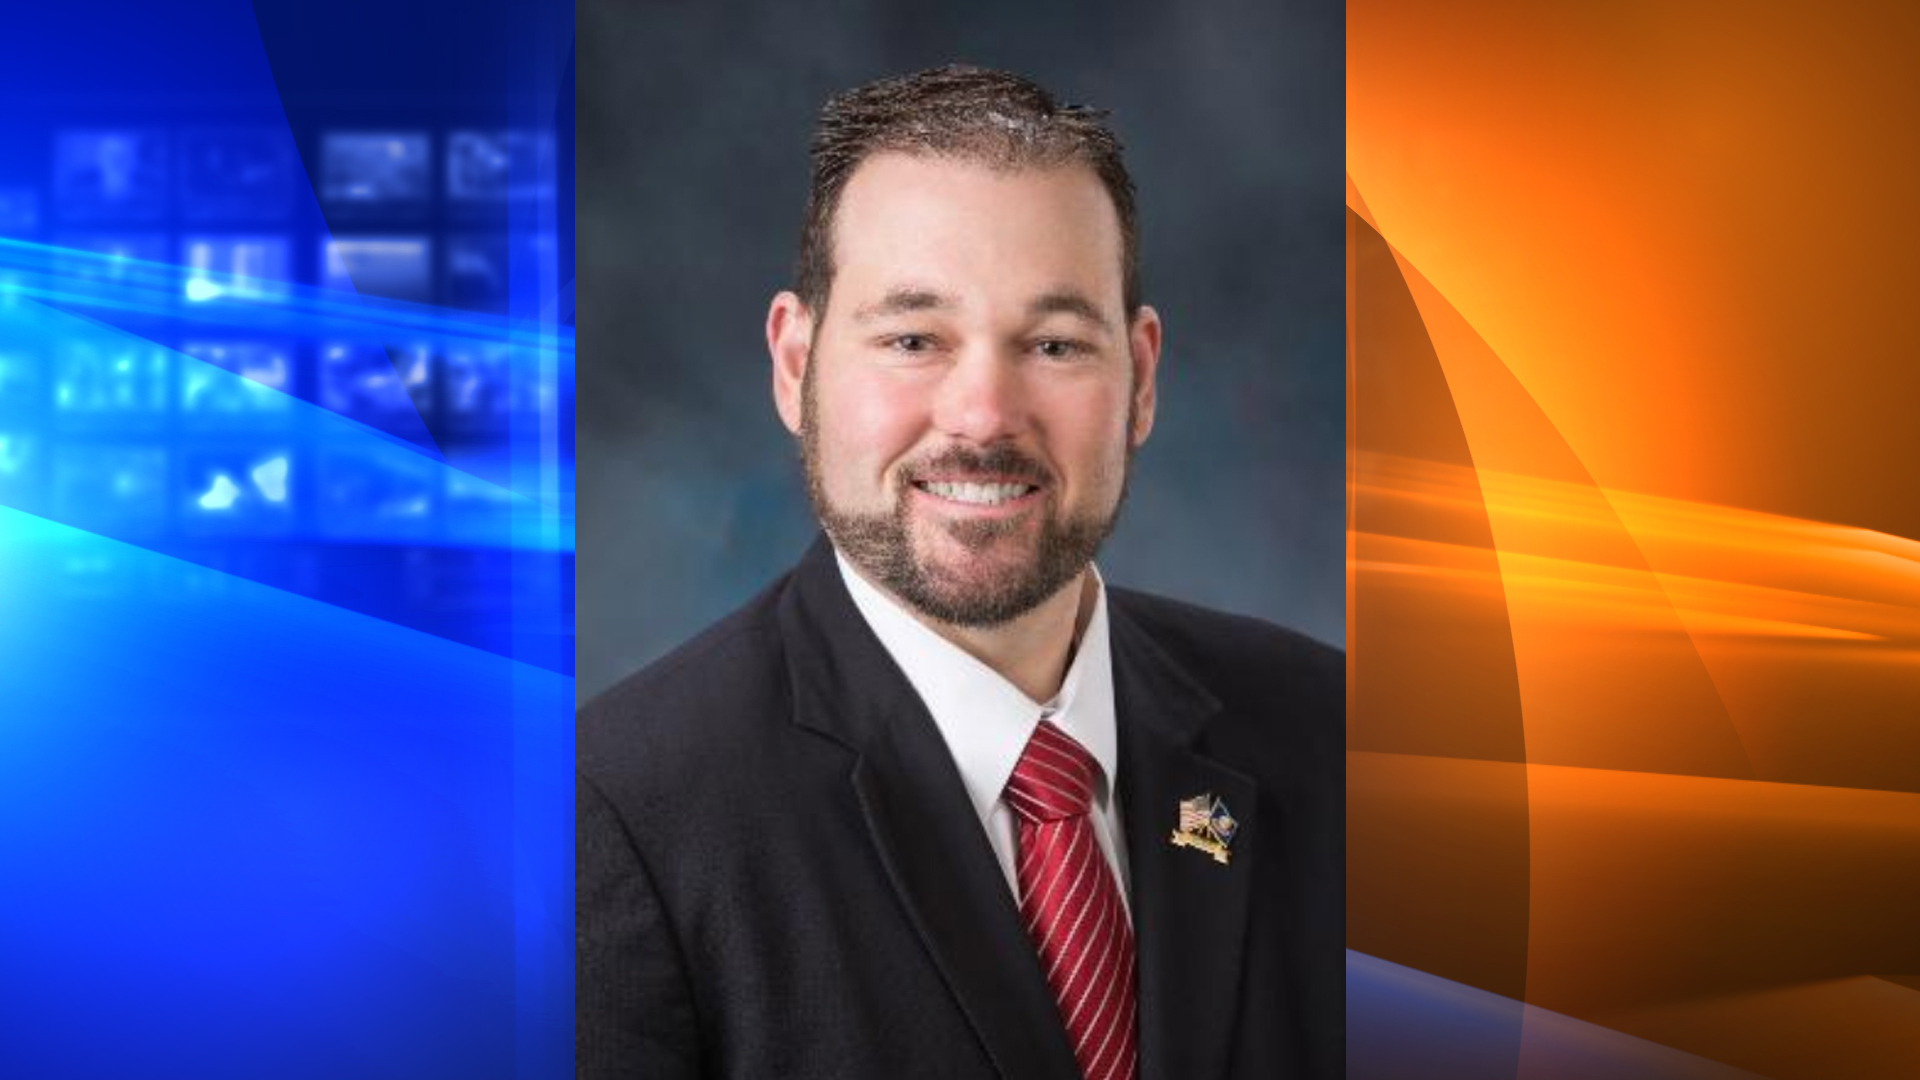 Former Idaho representative Brandon A. Hixon is shown in an undated photo posted on the official website for the state legislator.